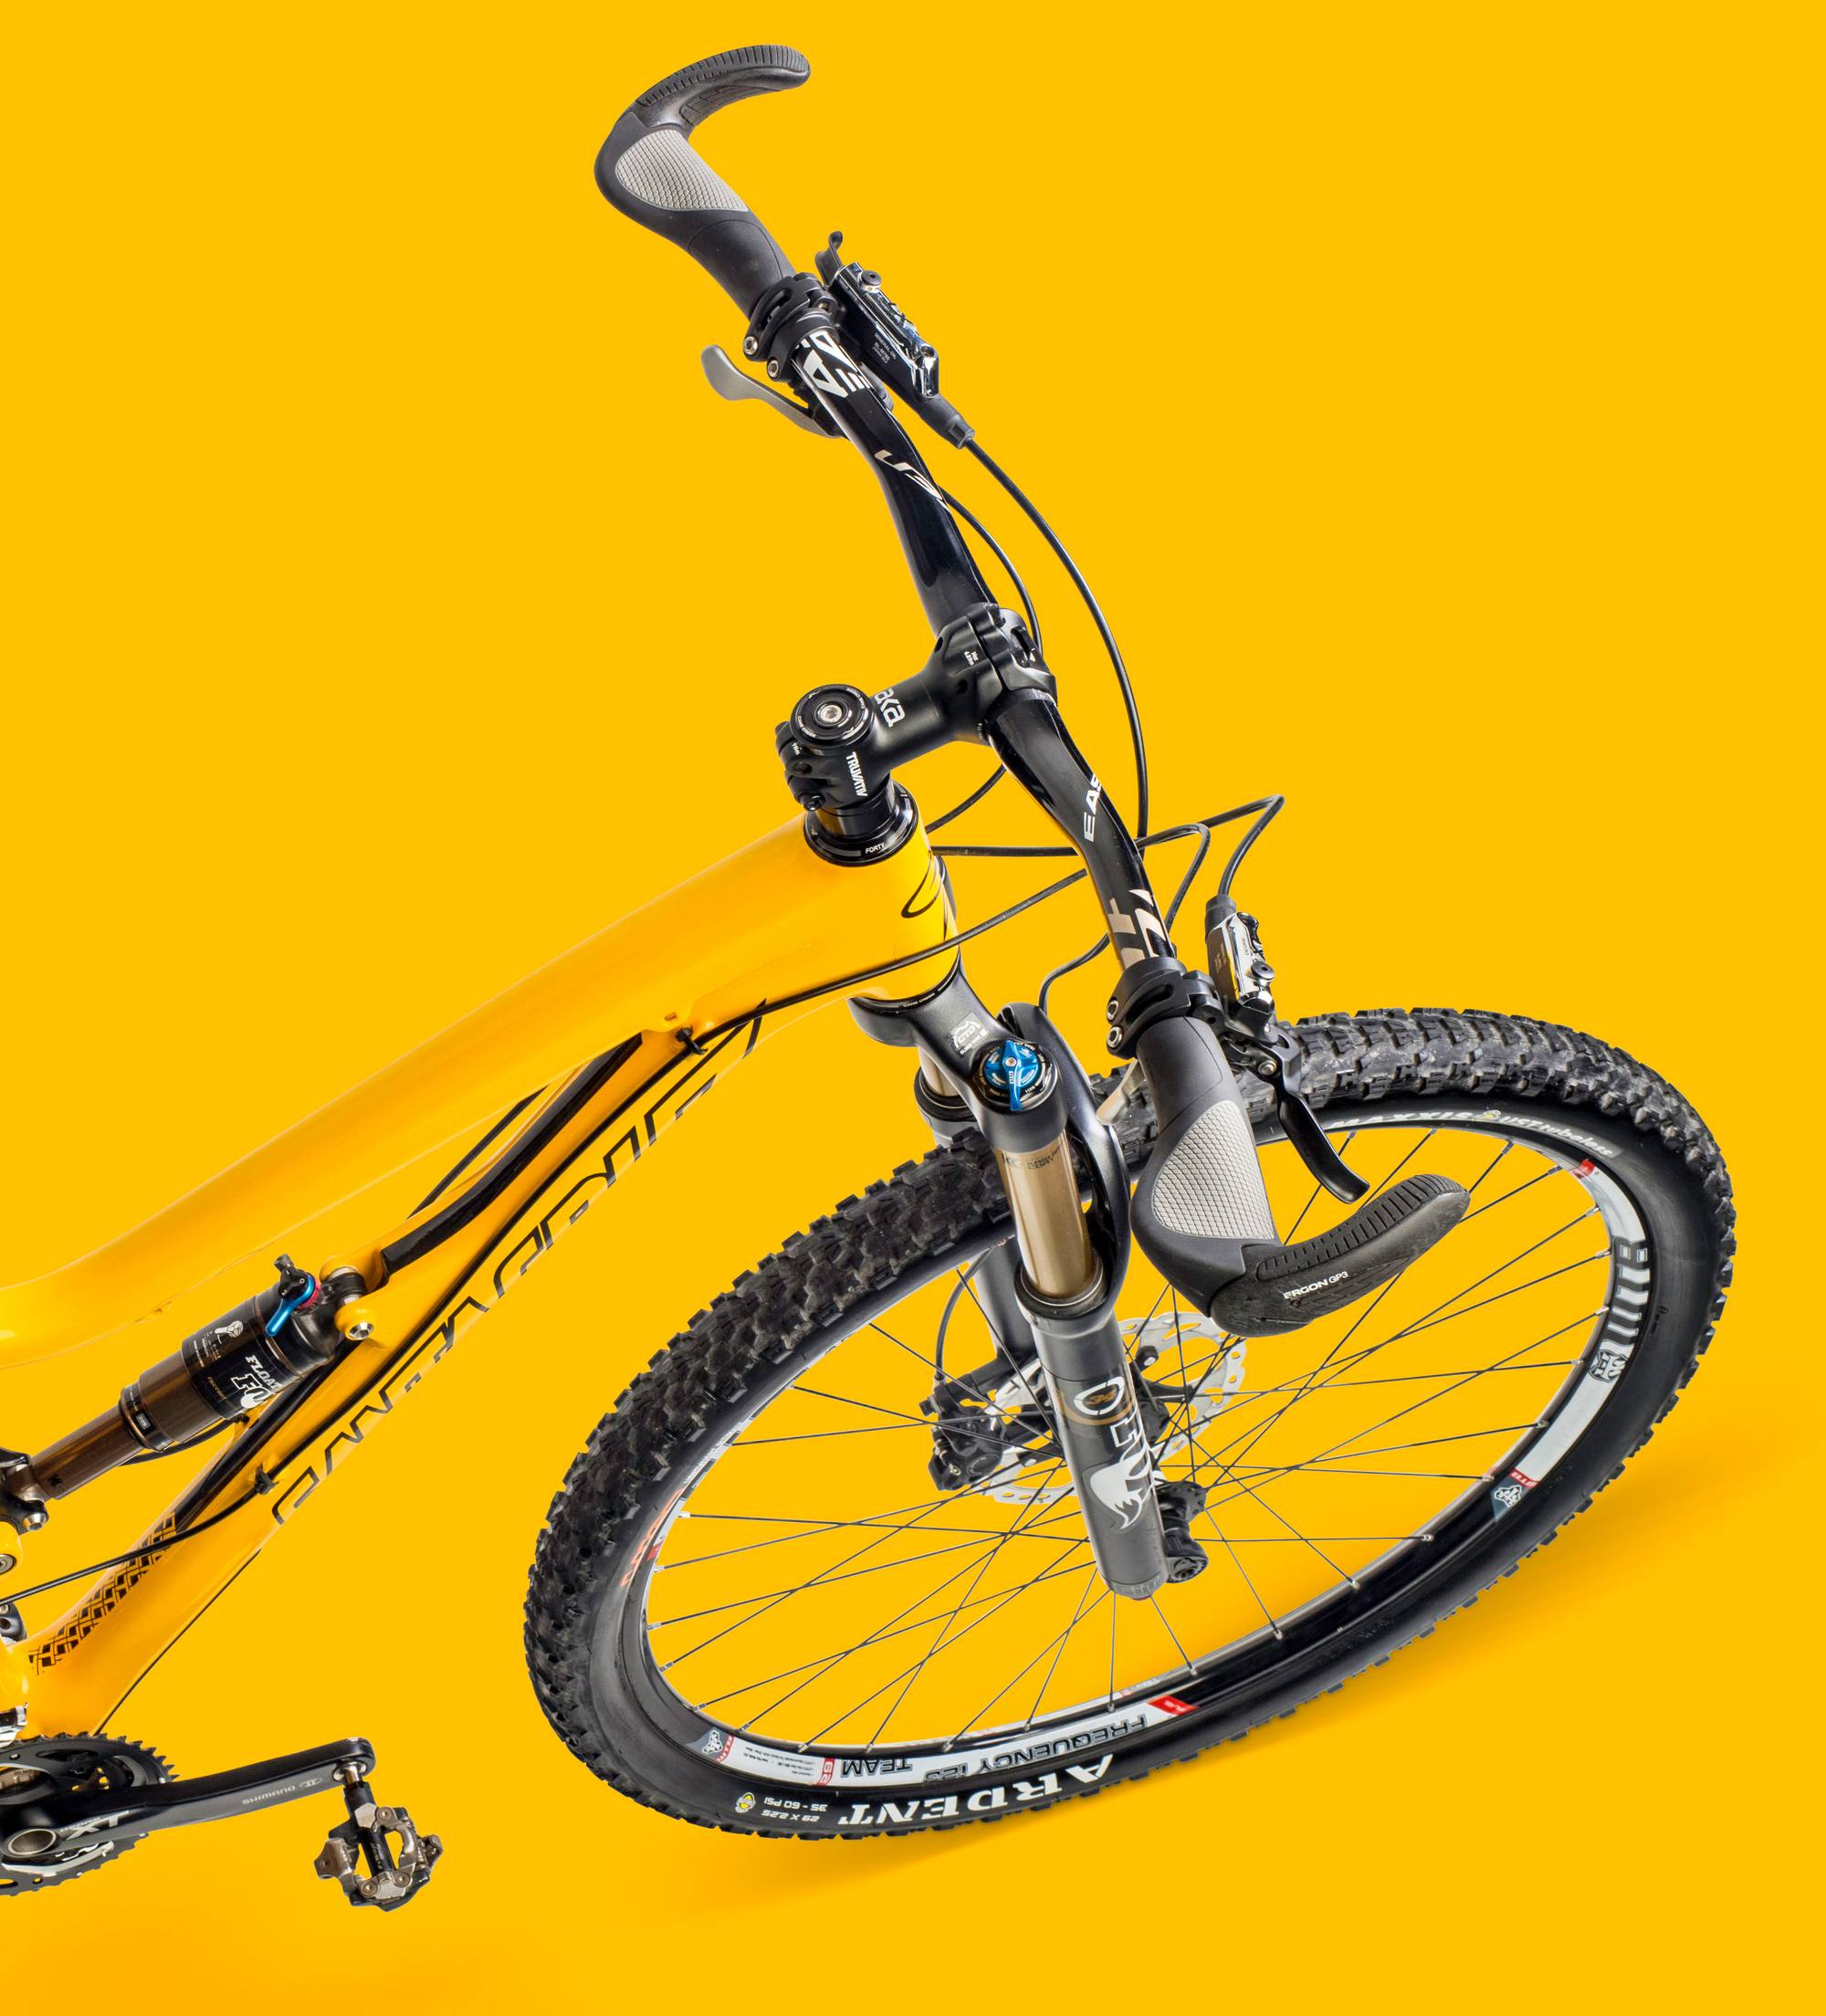 bike-yello-1.jpg